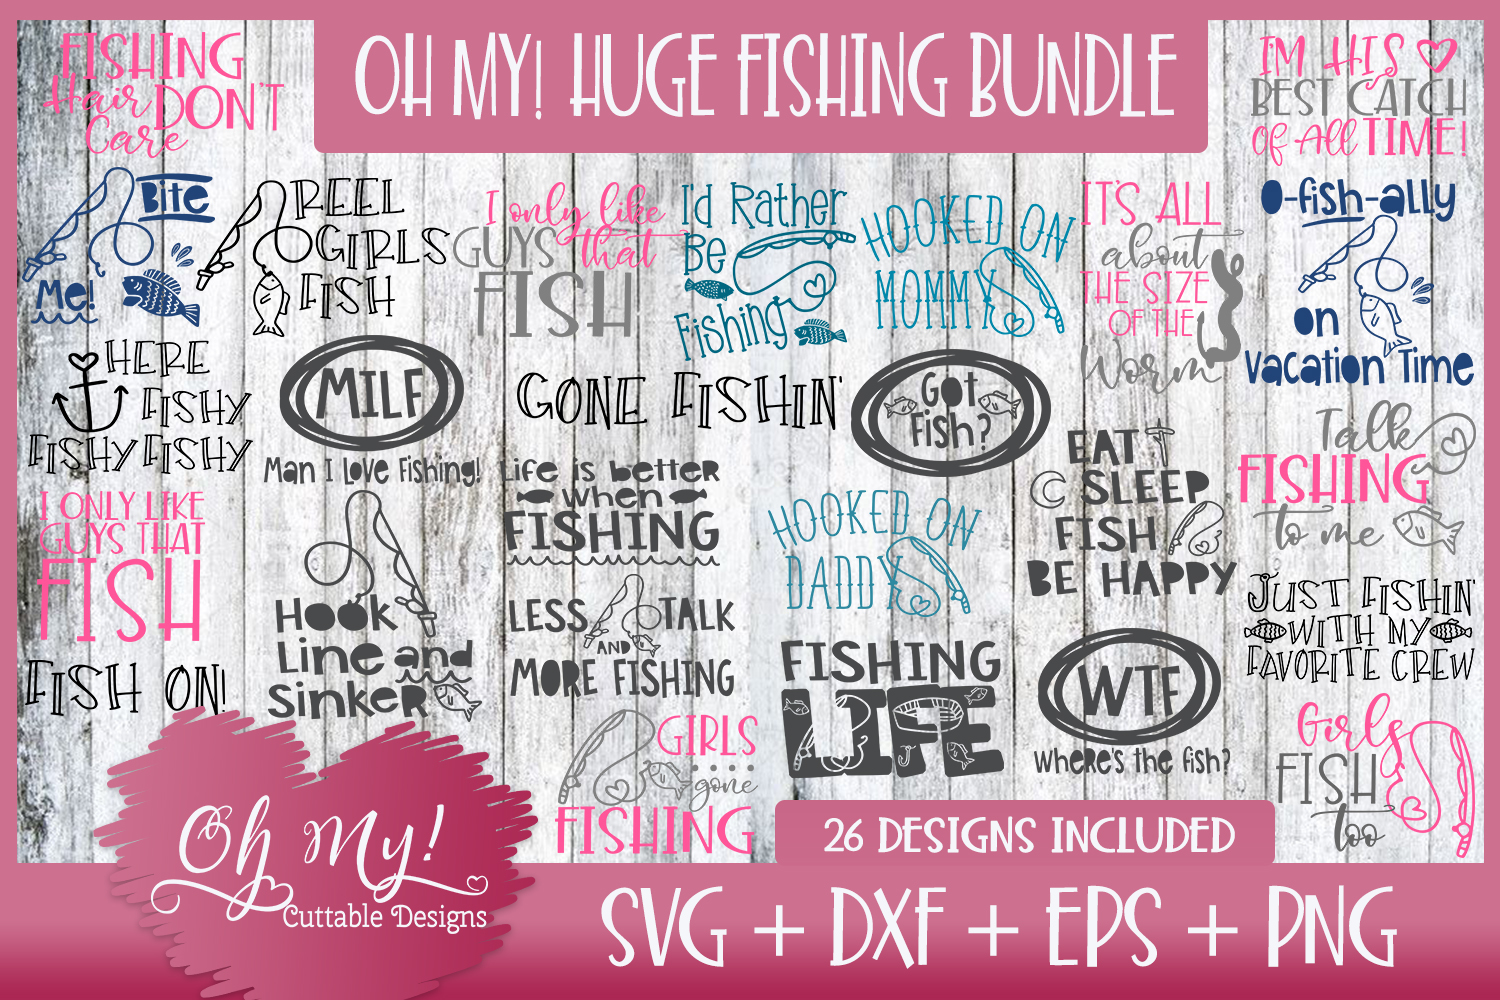 OH MY! HUGE FISHING BUNDLE DESIGNS SVG DXF EPS PNG example image 1